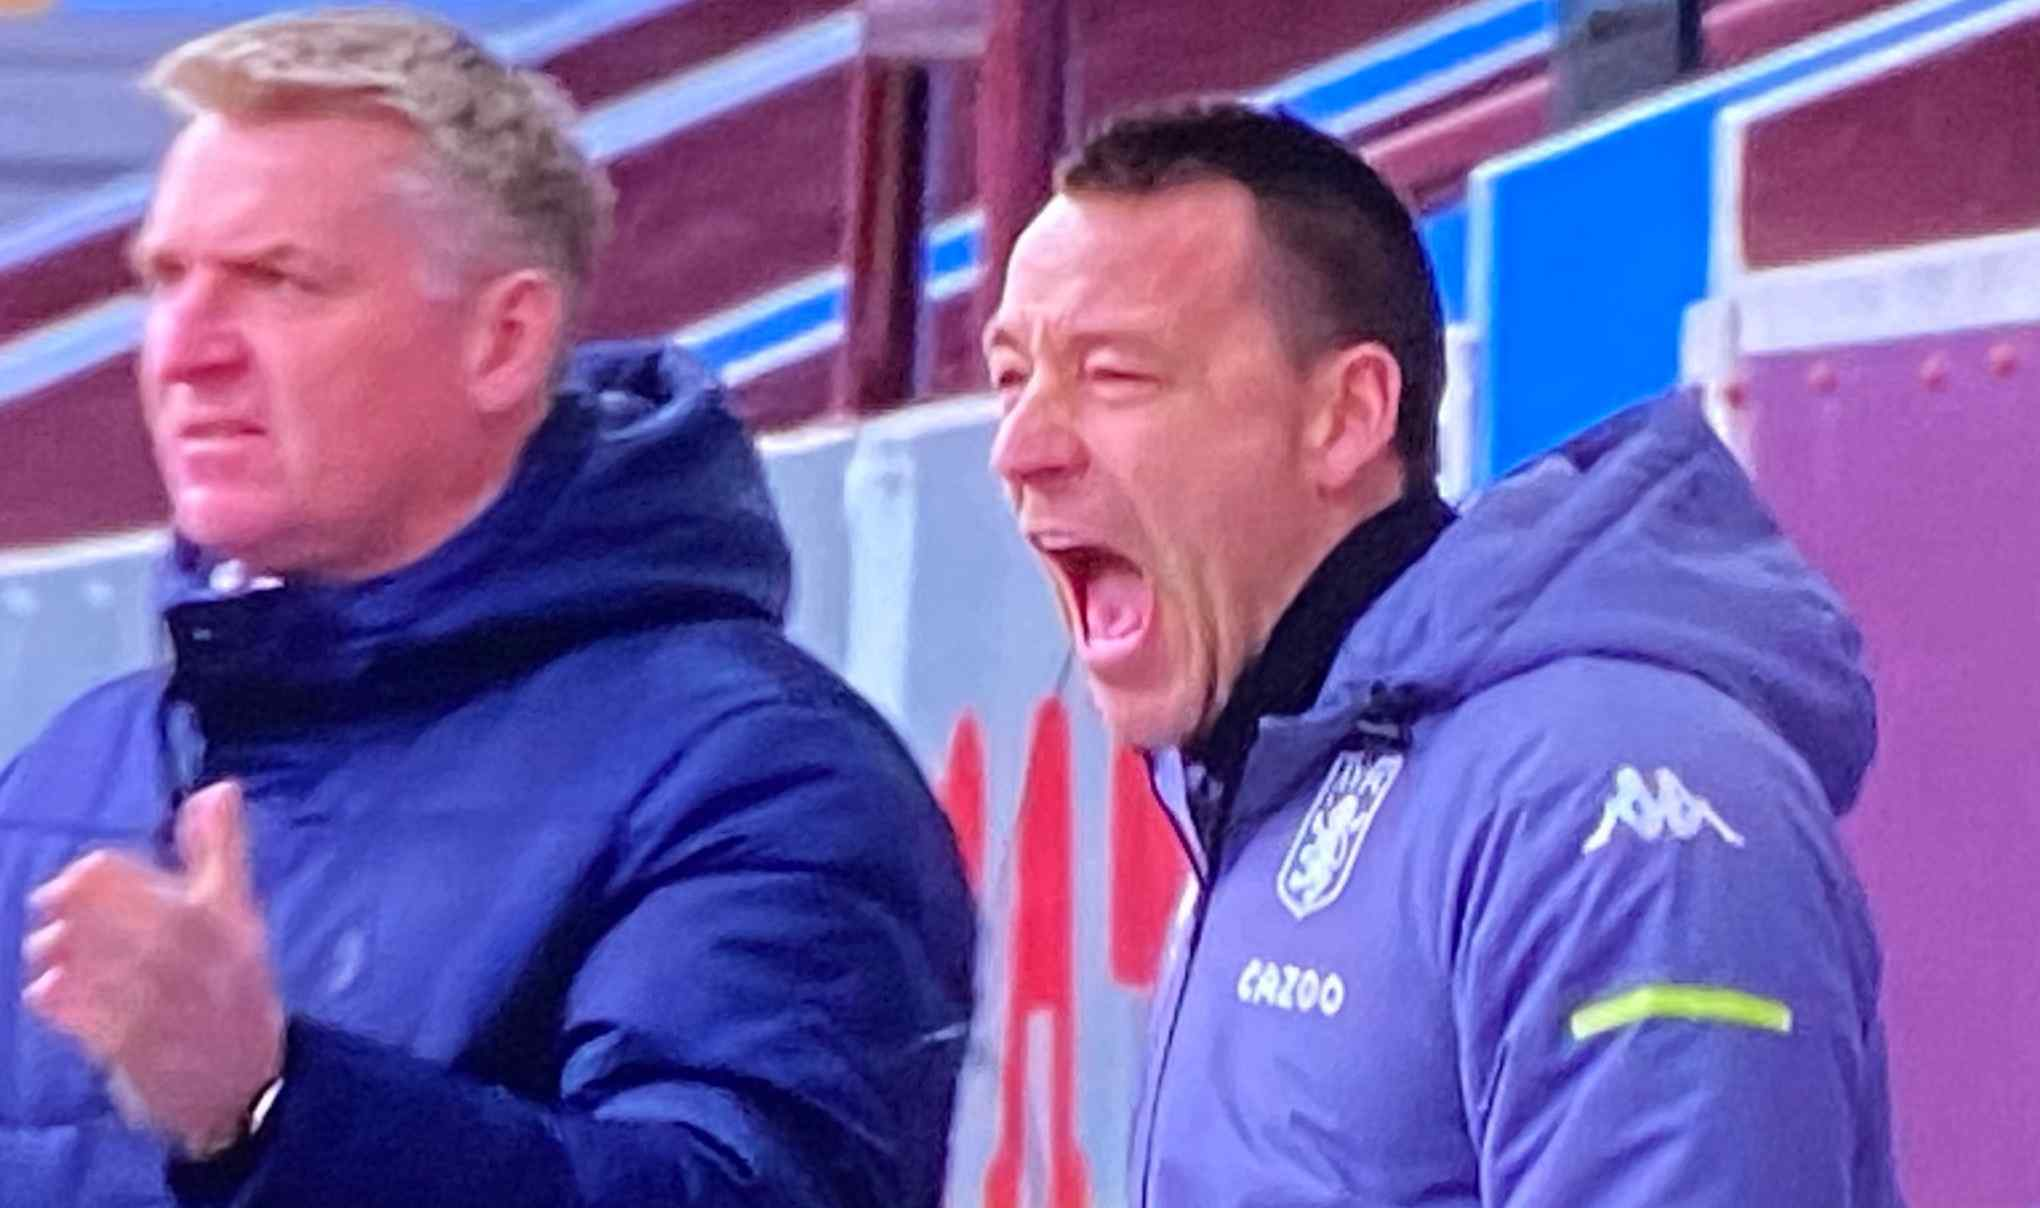 John Terry reacts to Aston Villa's 1-0 victory over Arsenal with celebratory post